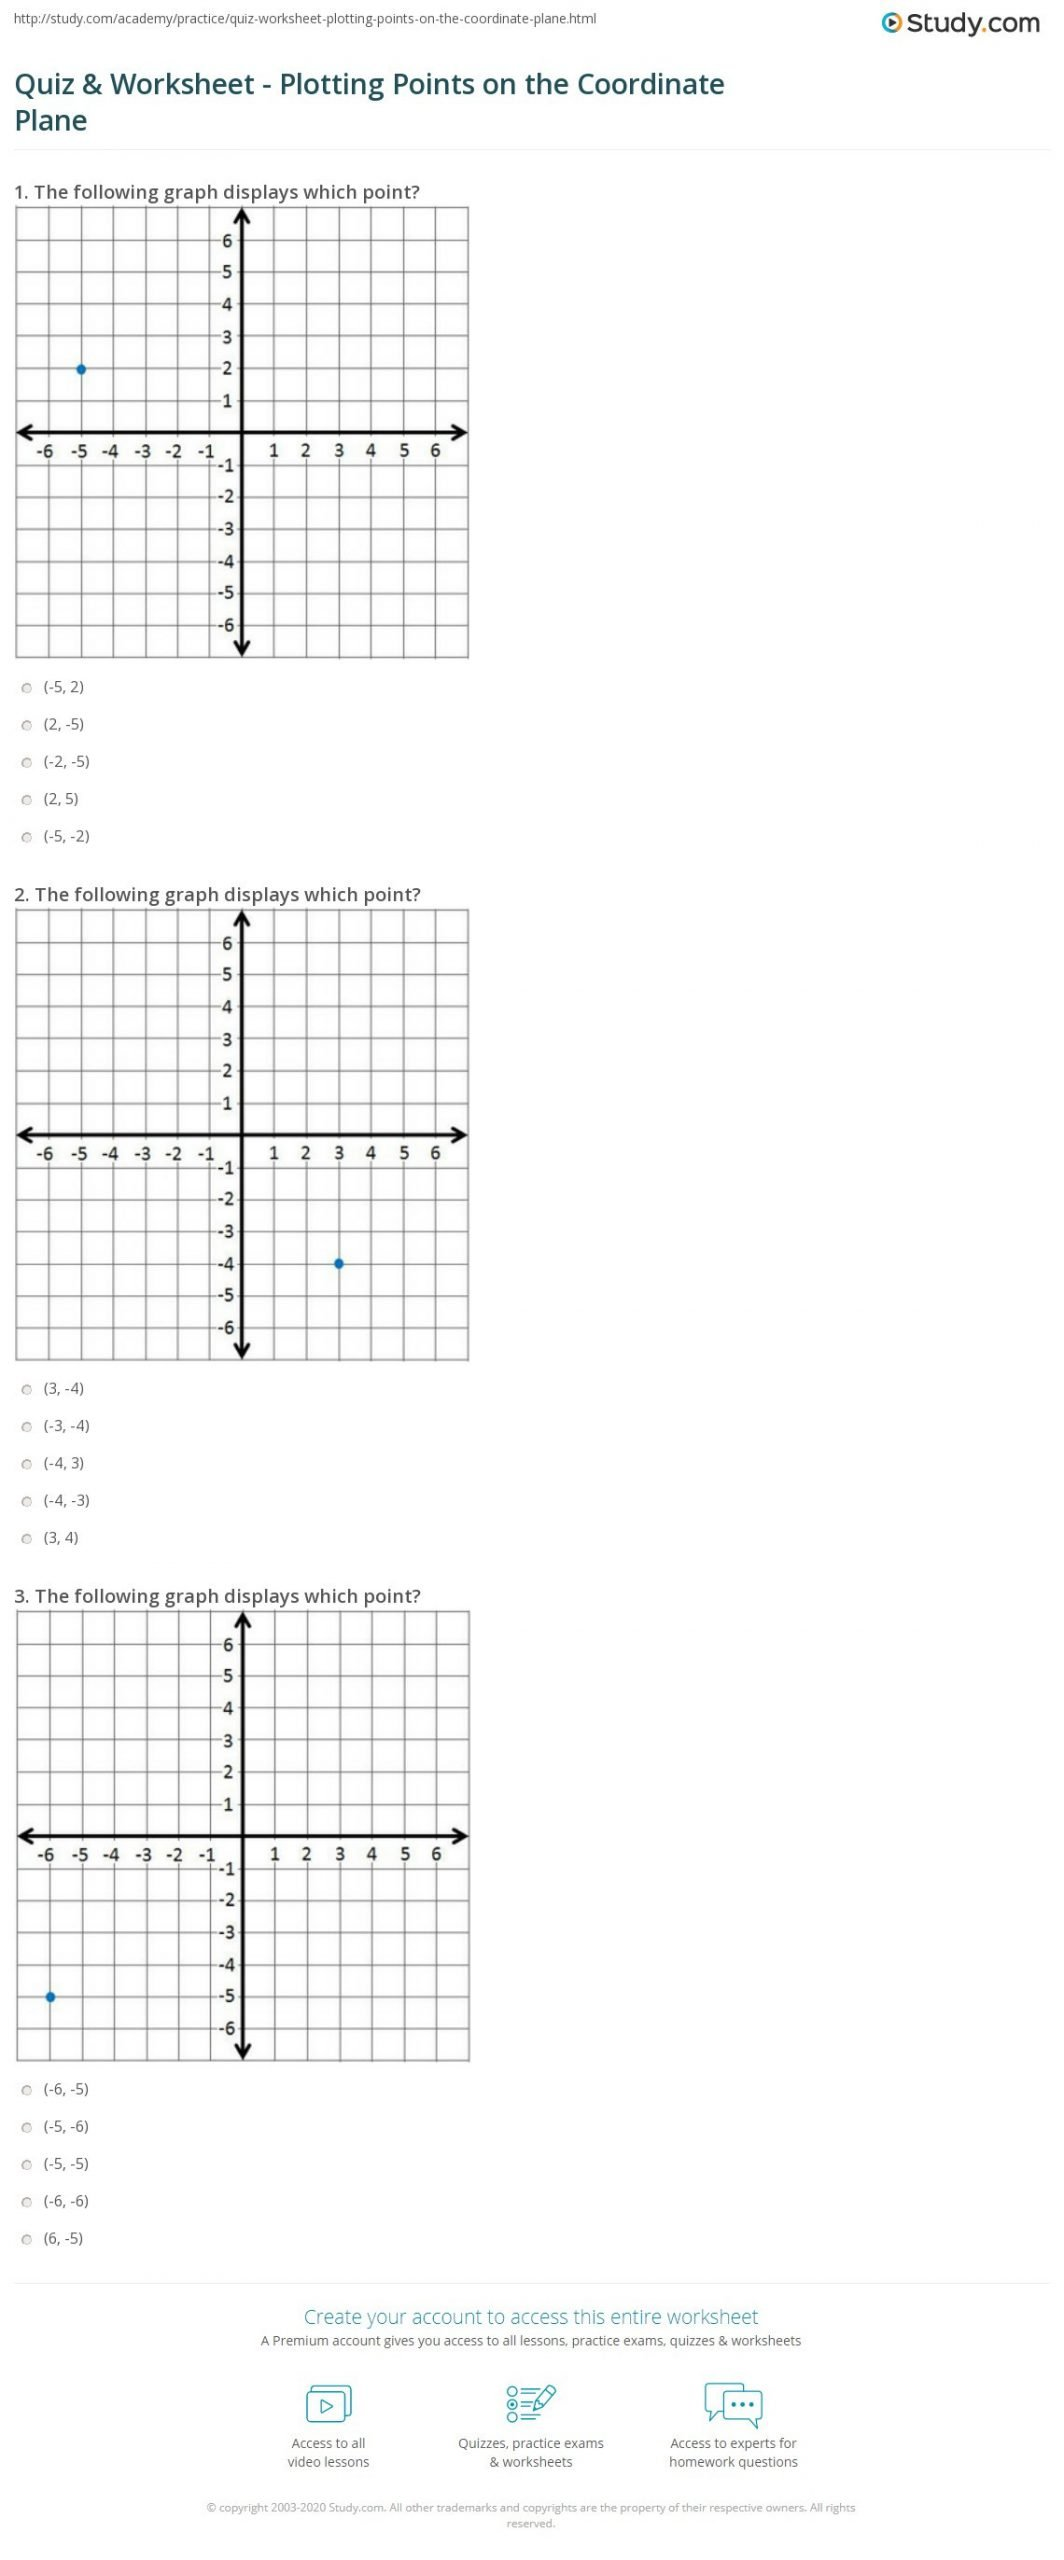 Plotting ordered Pairs Worksheet Quiz & Worksheet Plotting Points On the Coordinate Plane